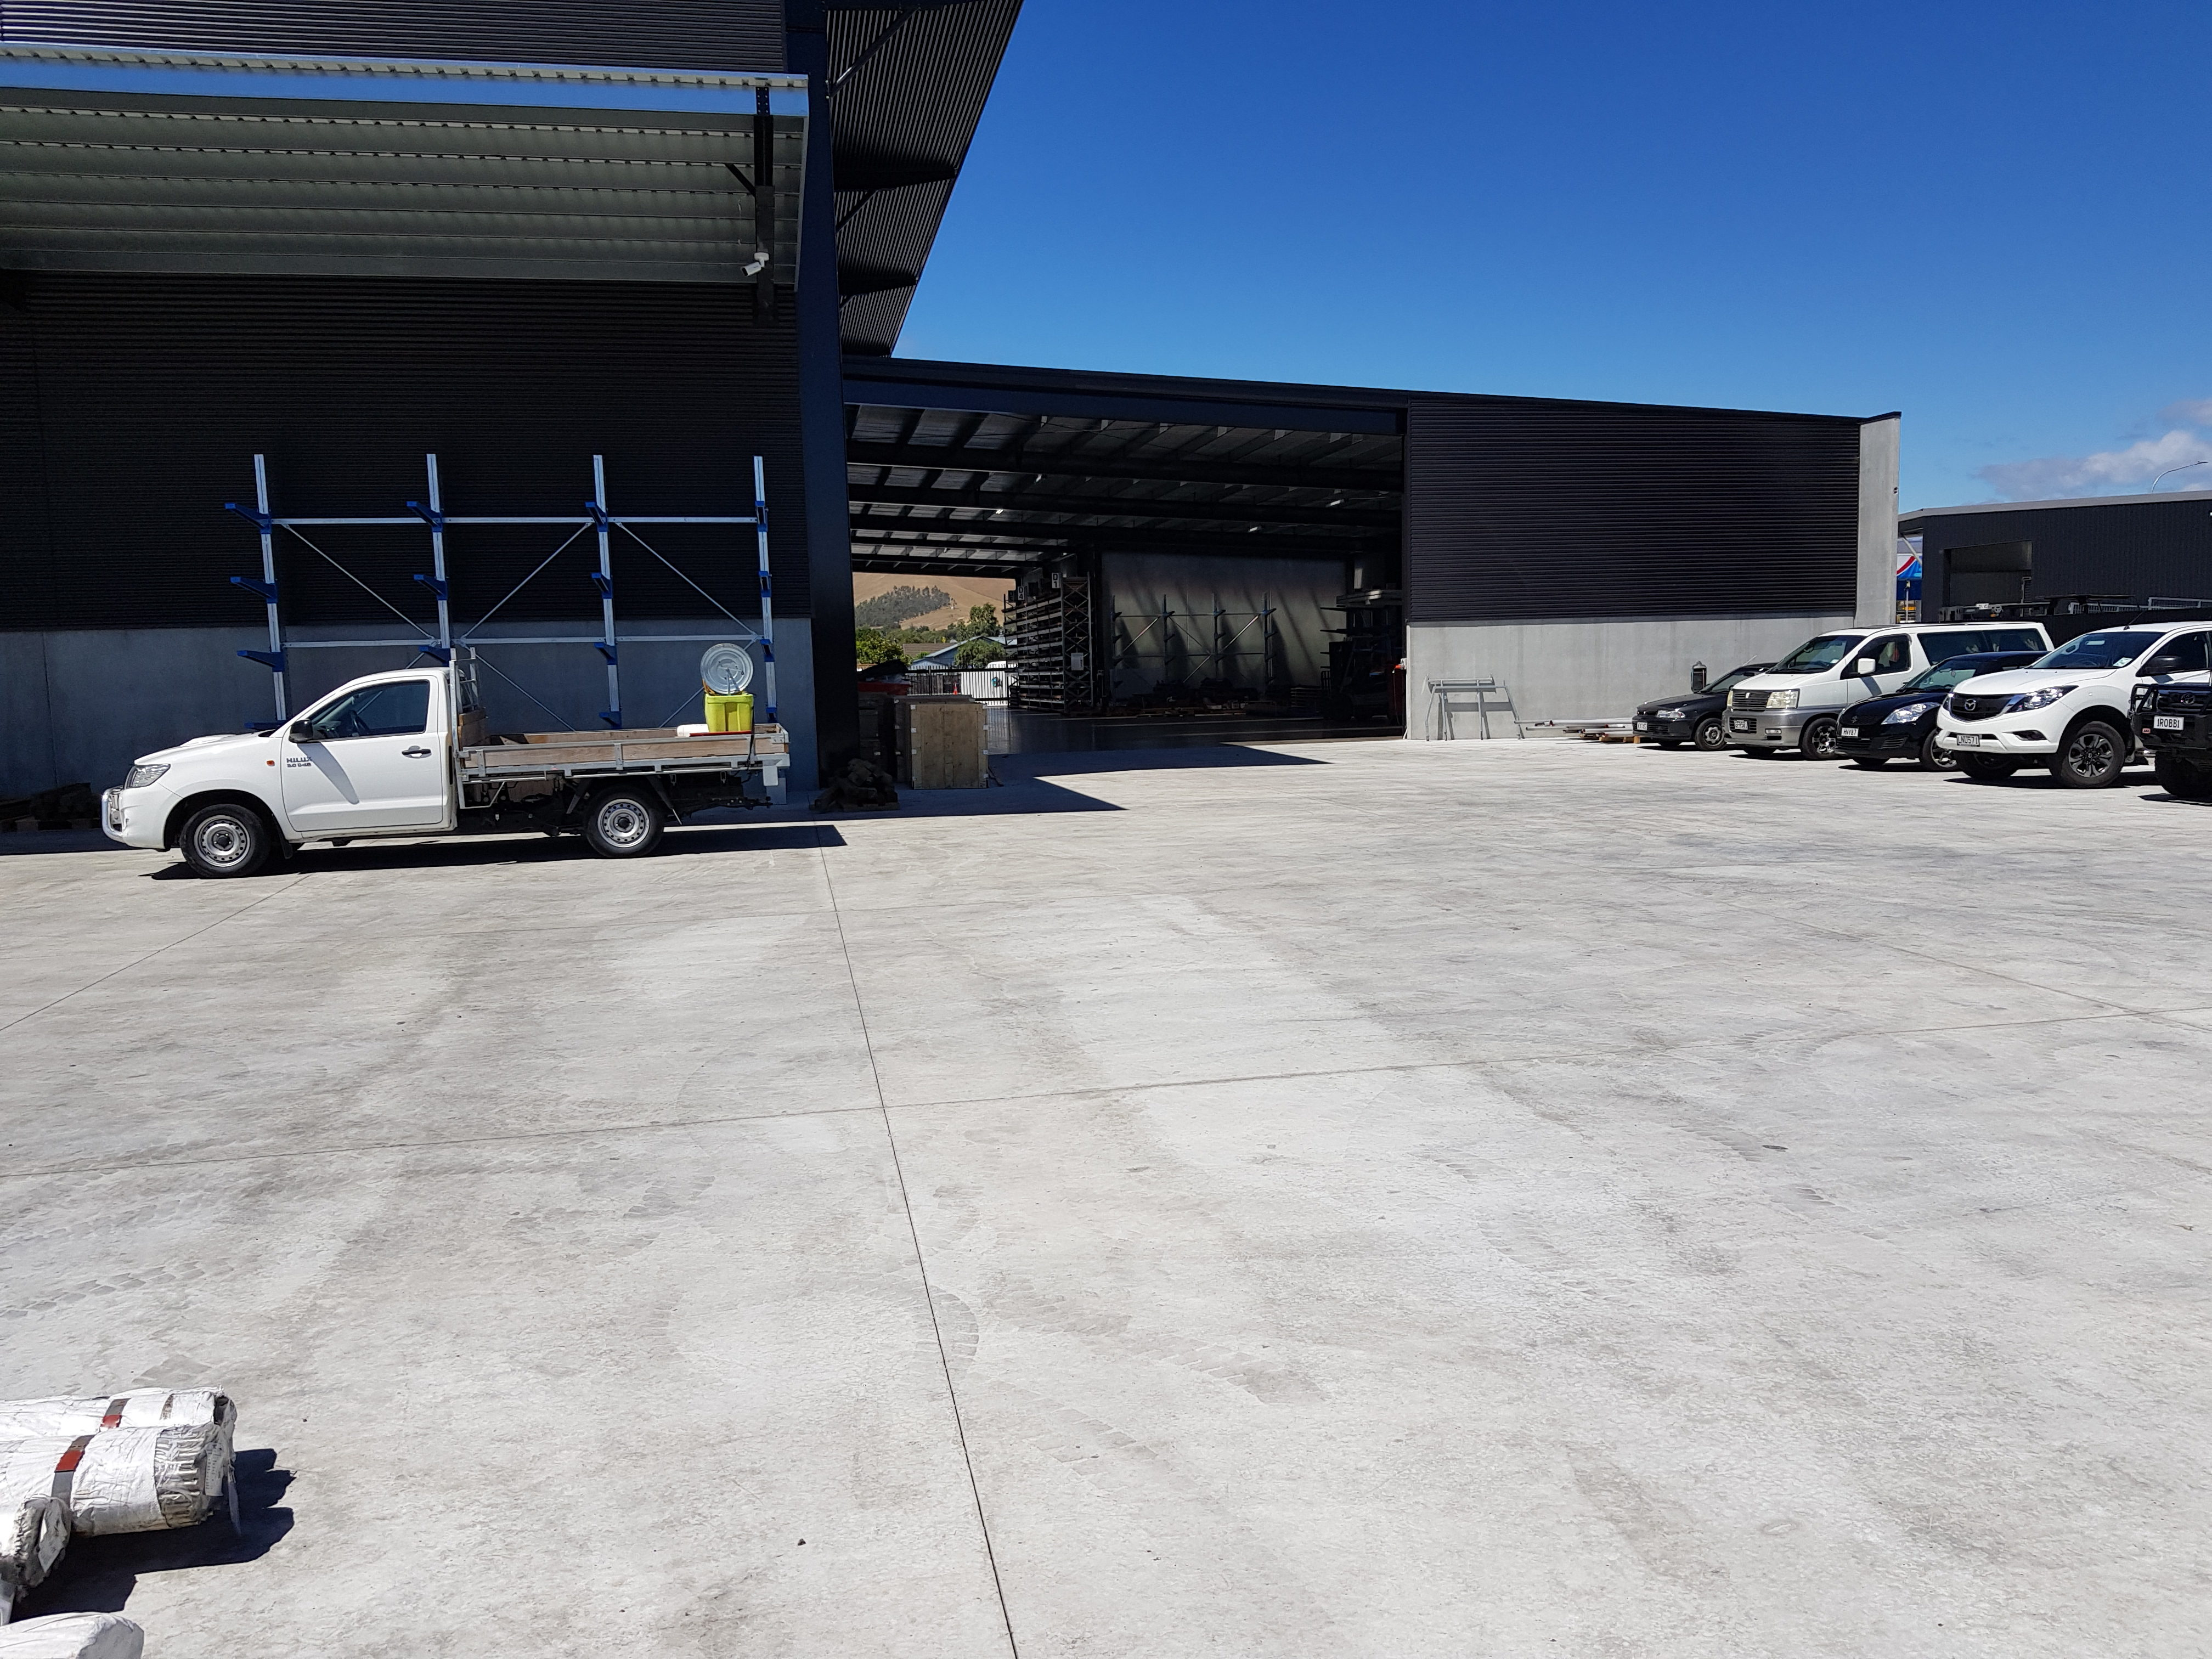 Commercial vehicles parked on strong fibre concrete slab work